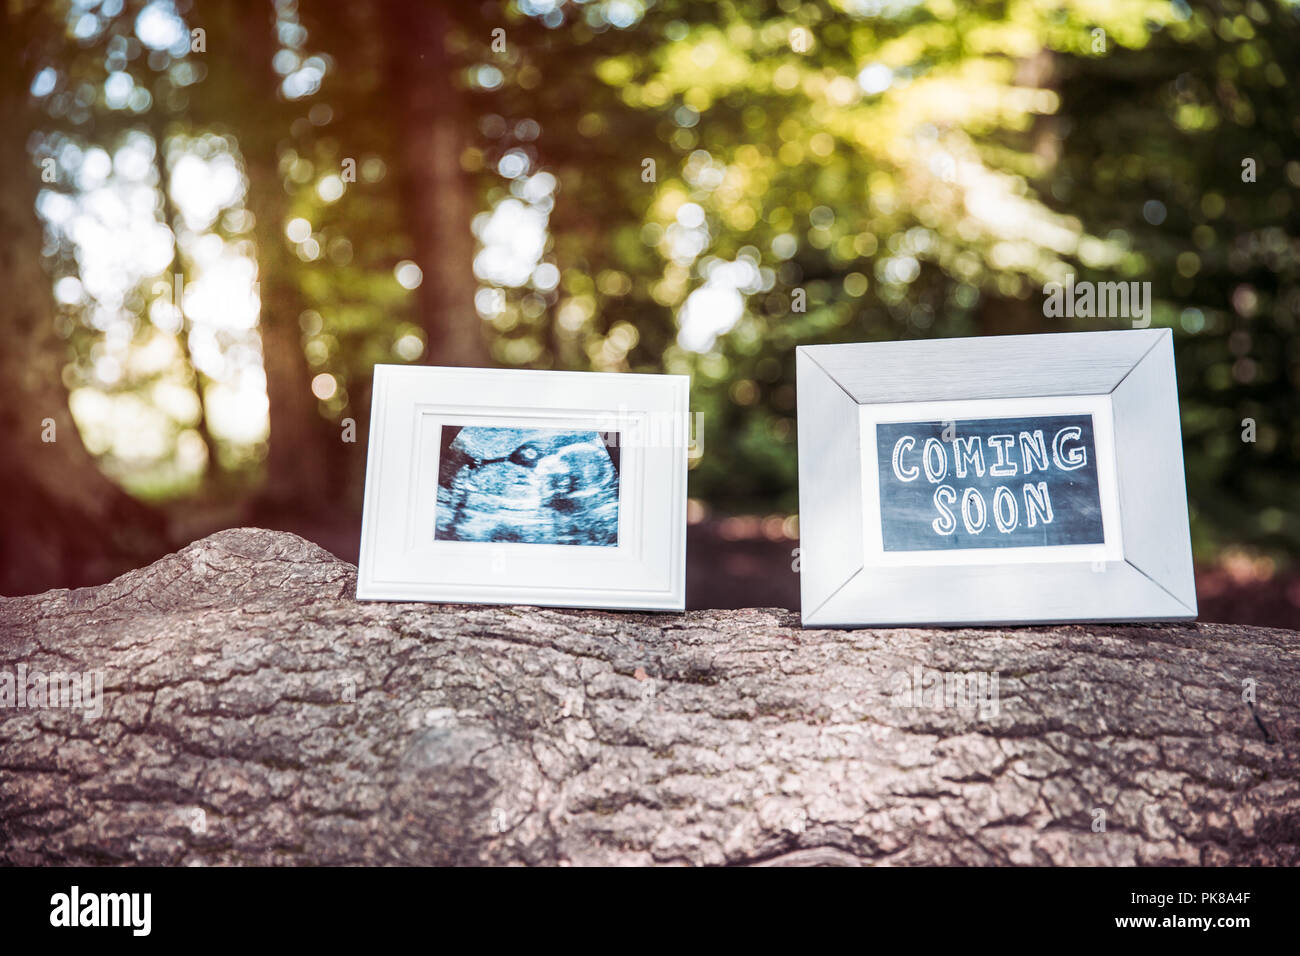 Baby Ultrasound and Coming Soon Photo Frames on Tree Trunk in Forest ...